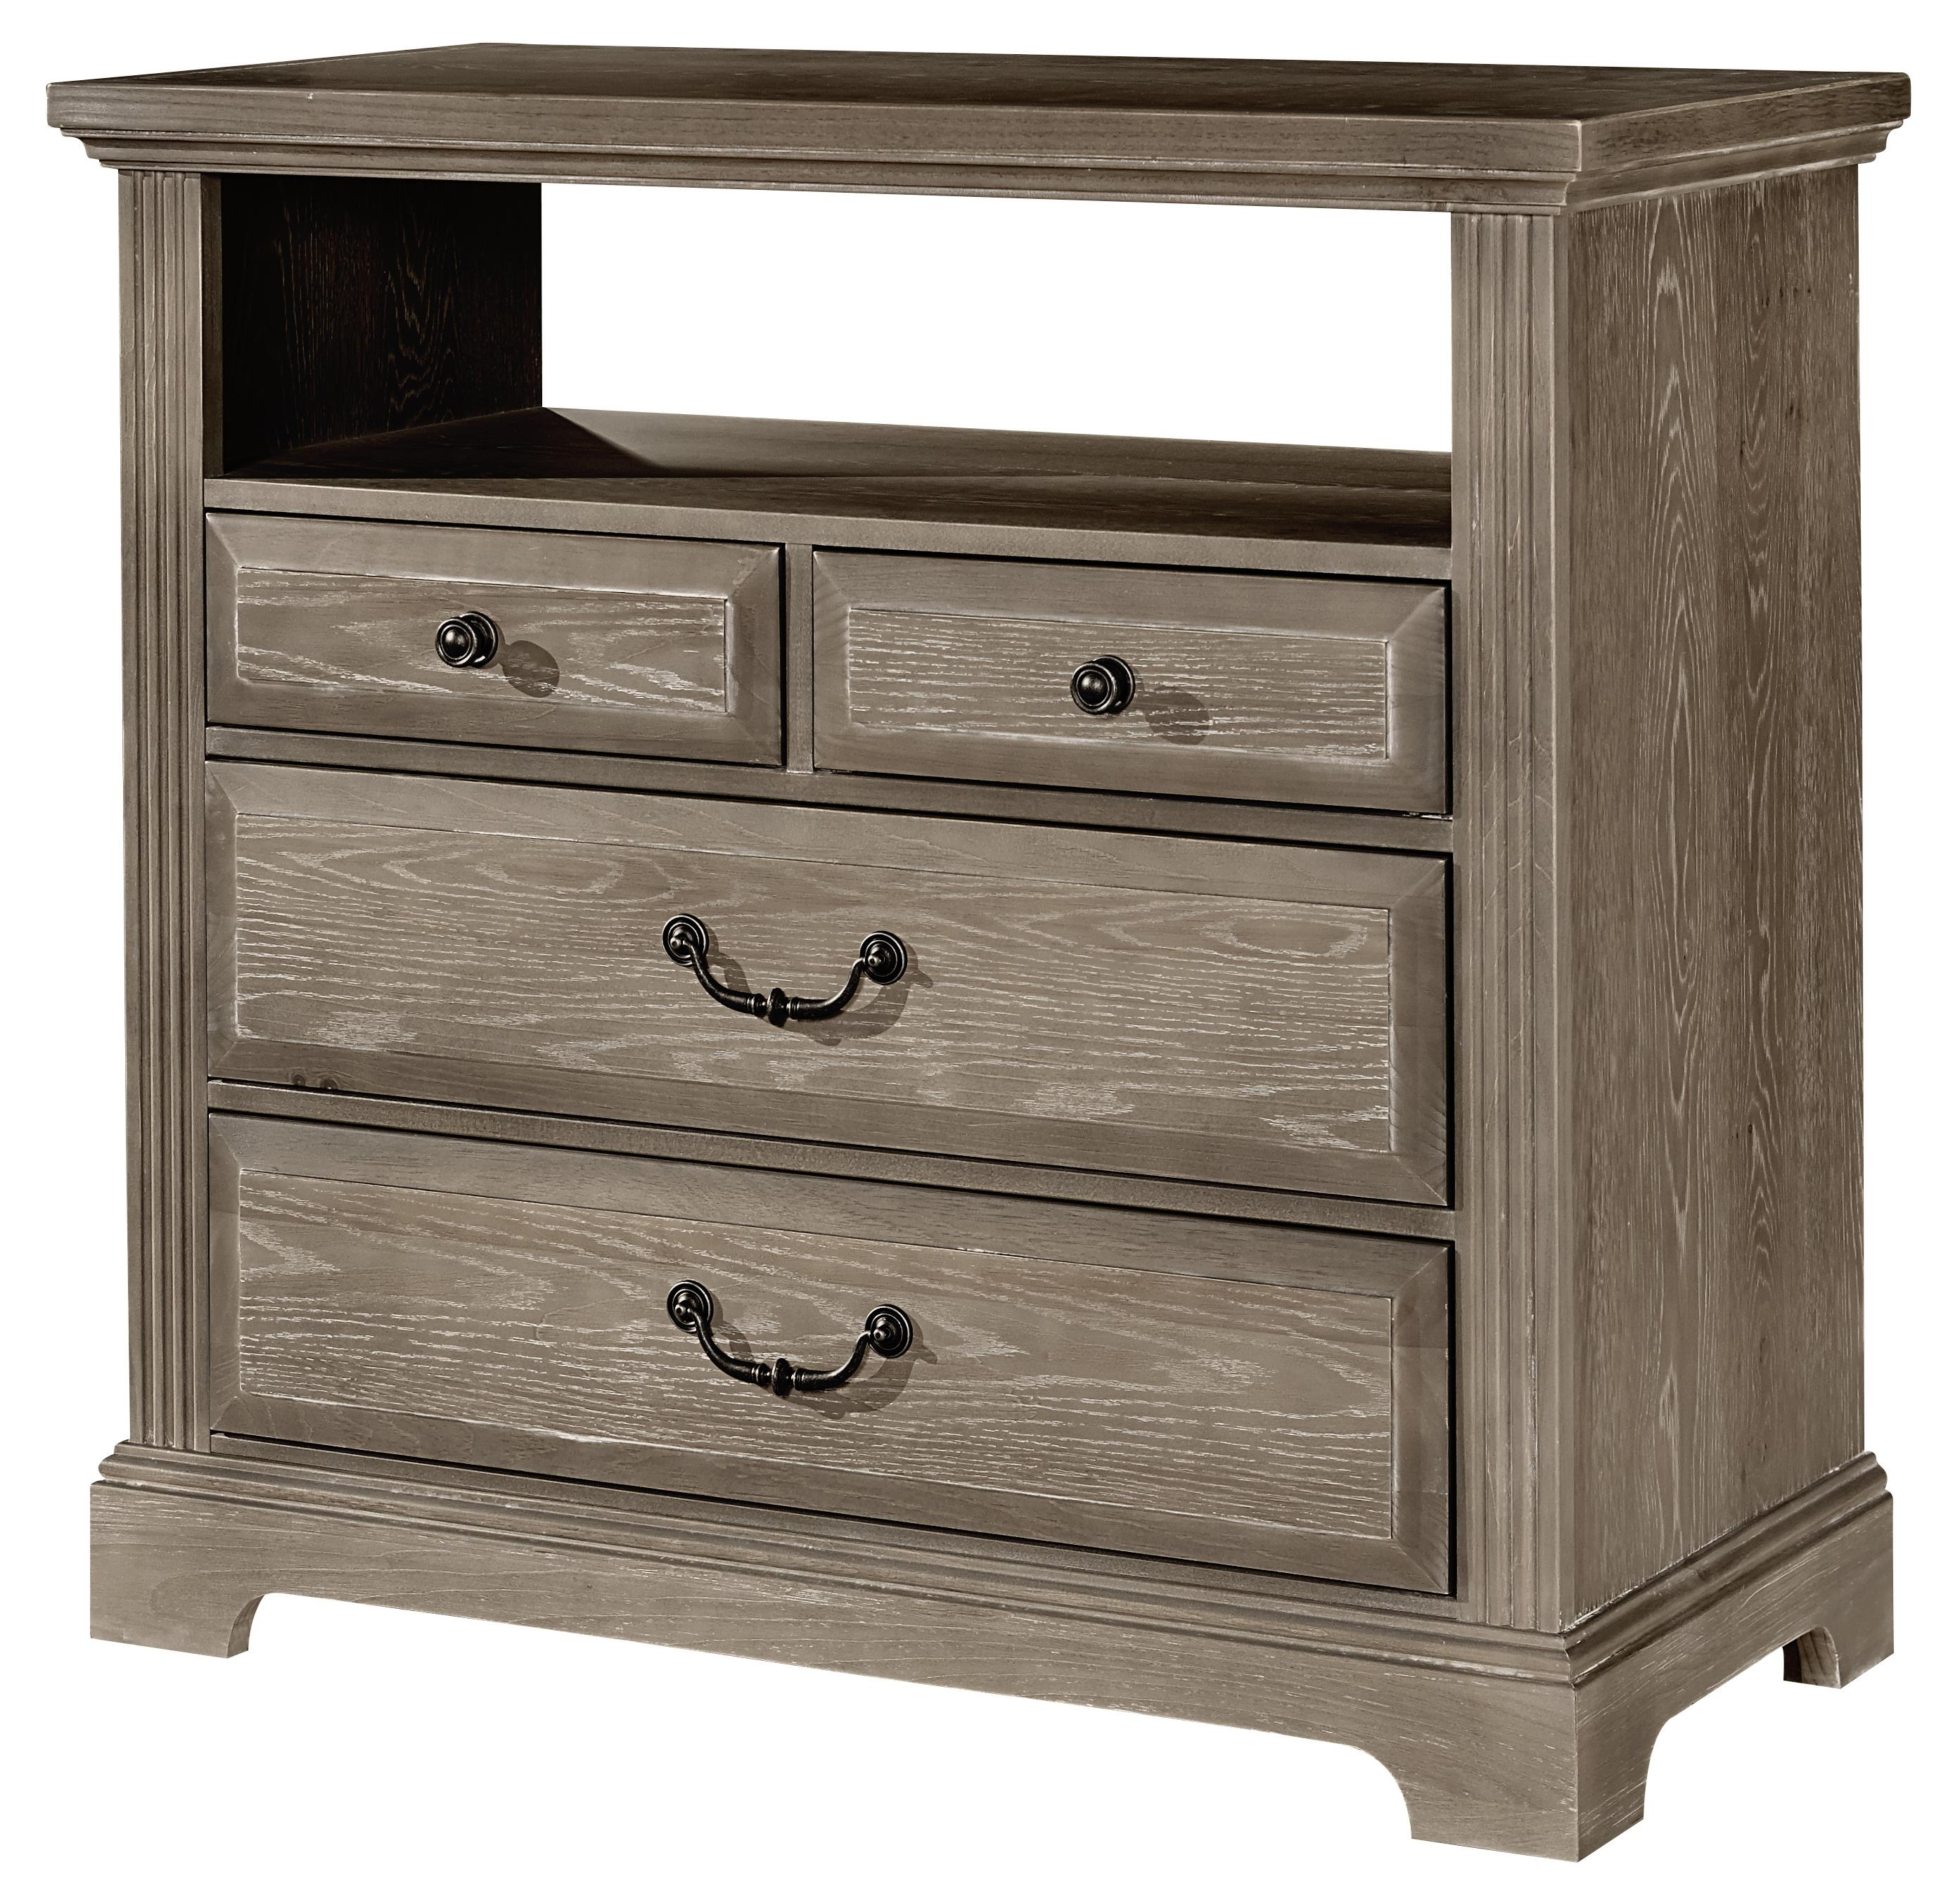 Vaughan Bassett Woodlands Media Chest - 4 drawers - Item Number: BB96-114